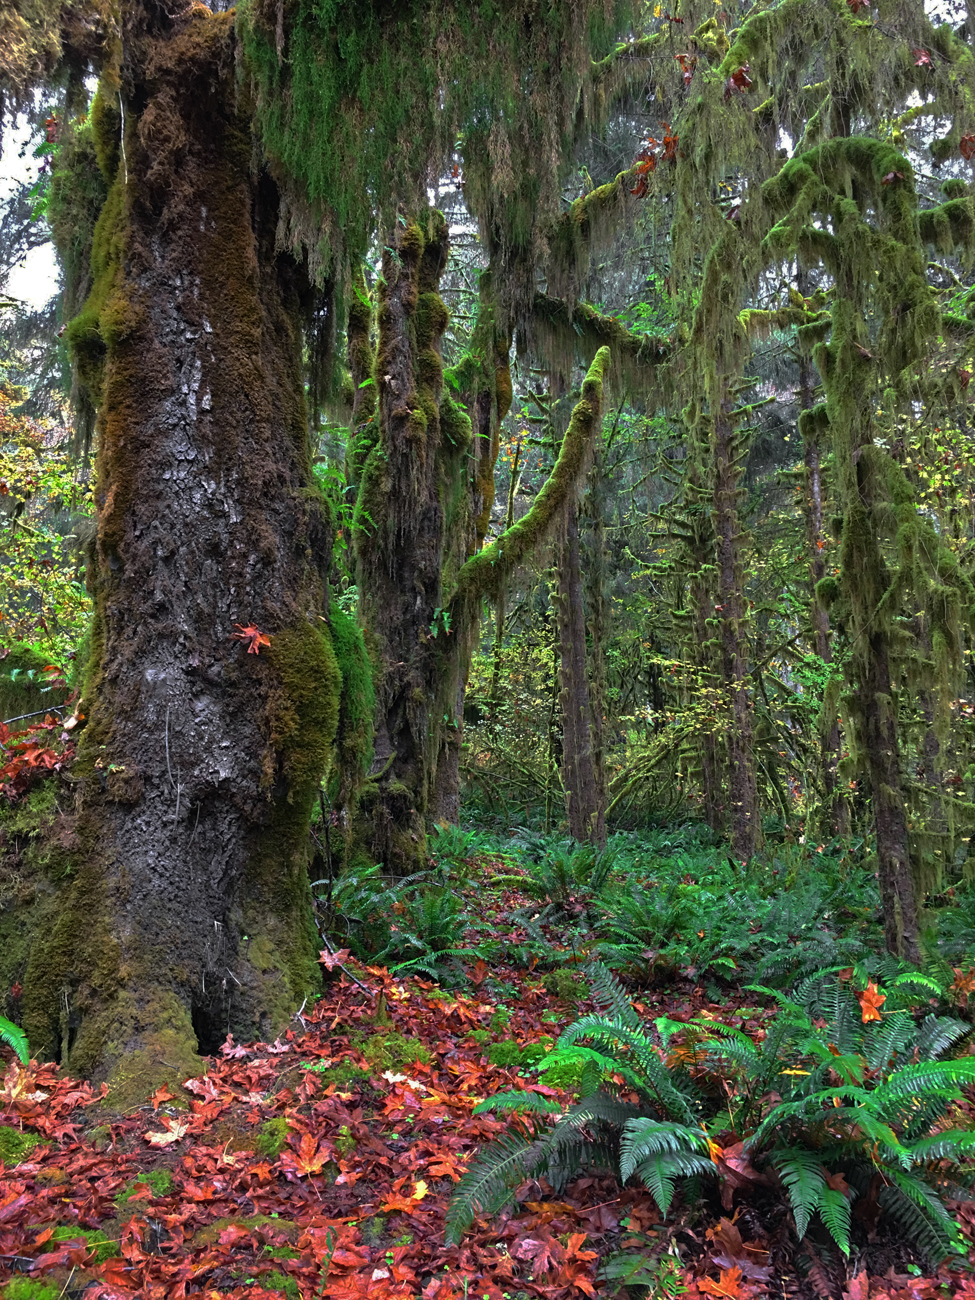 Moss-covered trees, ground covered in orange maple leaves and green ferns in the Hoh